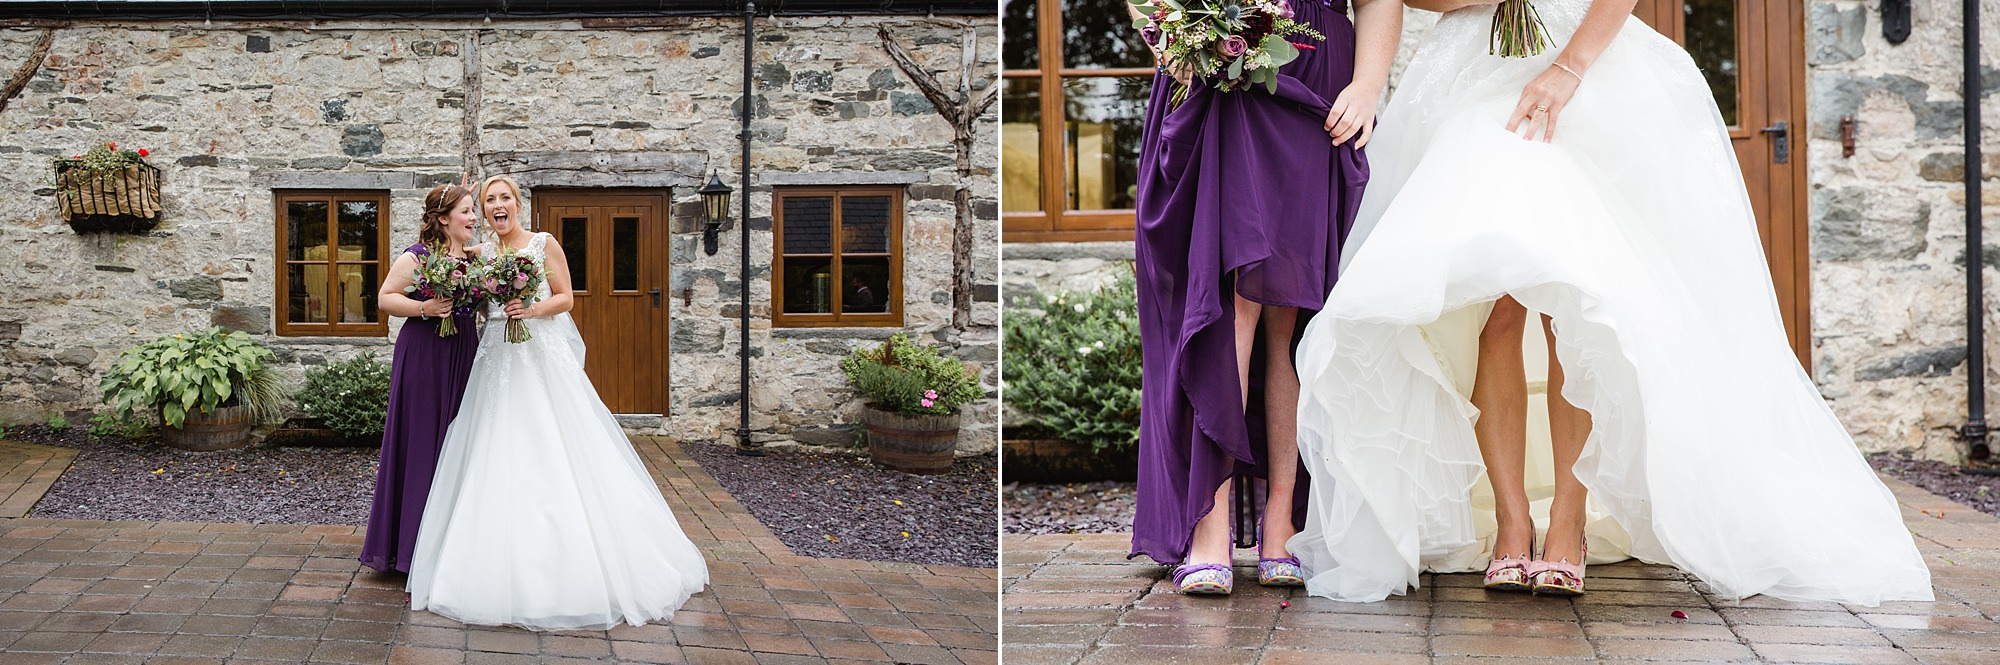 A fun wedding at Plas Isaf bride and bridesmaid showing off their shoes